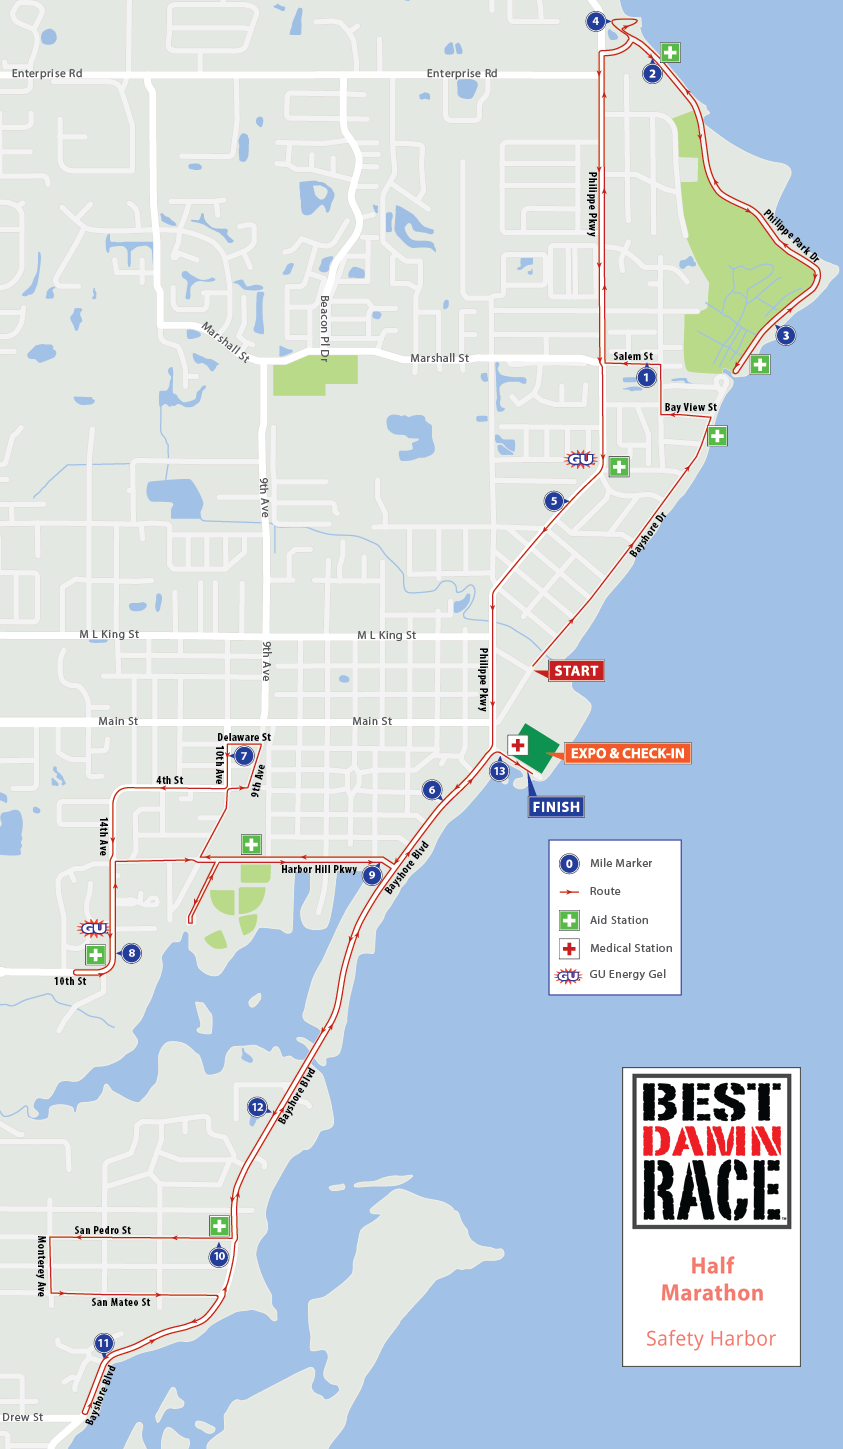 Safety Harbor, FL - Best Damn Race - Half Marathon Map 2019